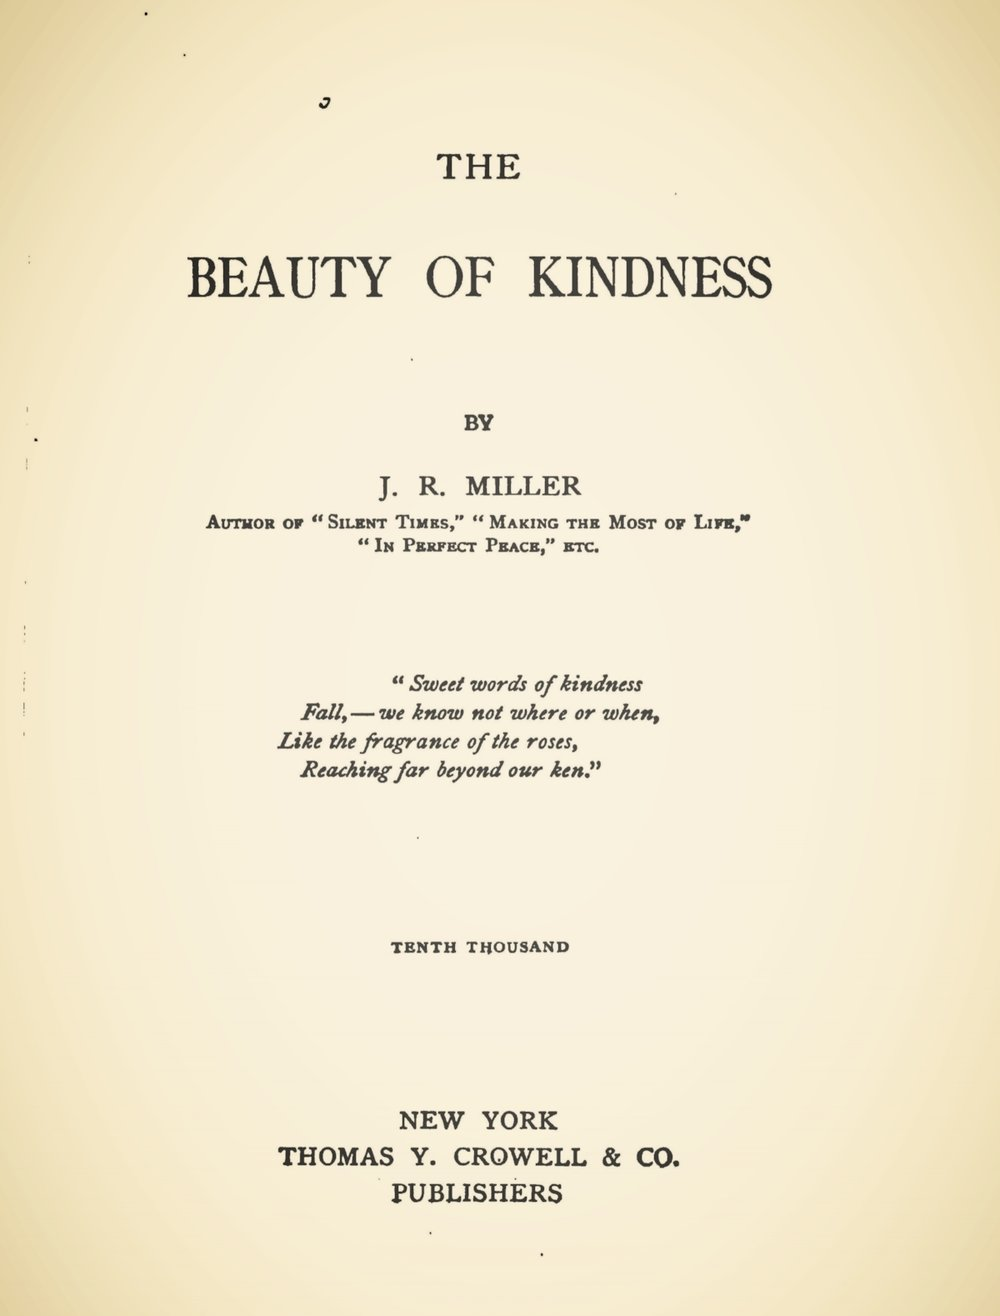 Miller, James Russell, The Beauty of Kindness Title Page.jpg